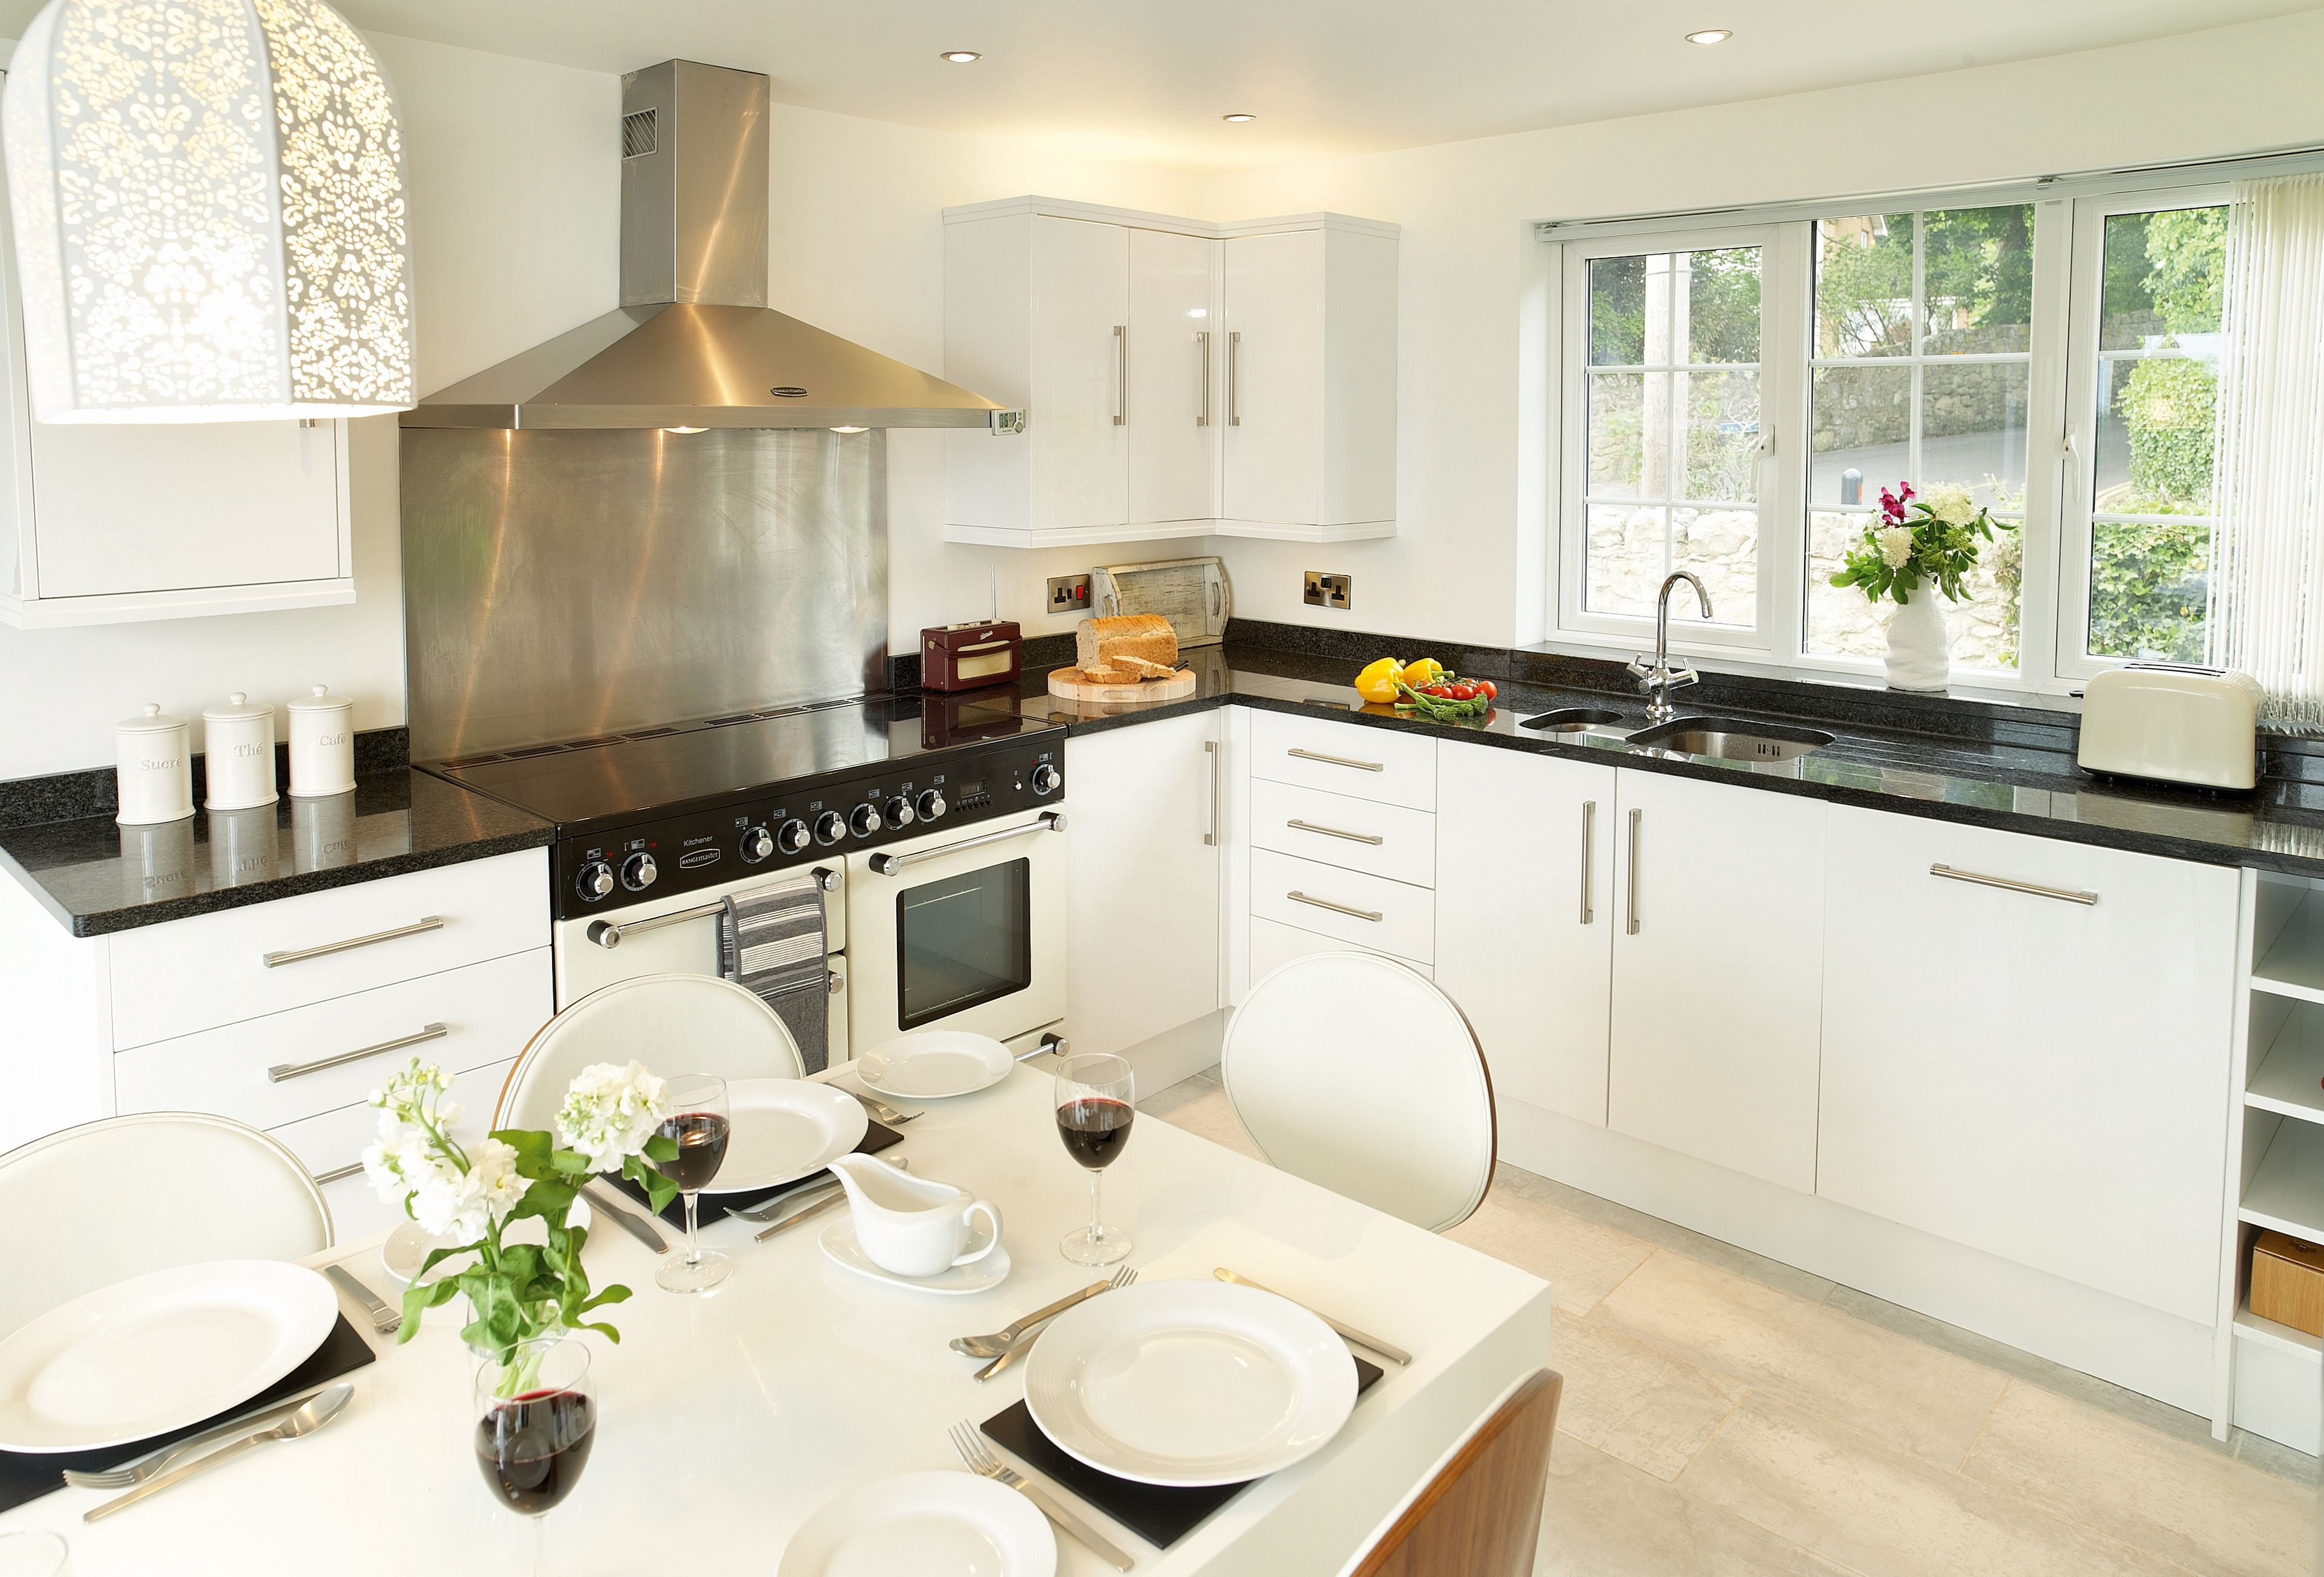 West Winnowing - Holiday Cottages in Hampshire